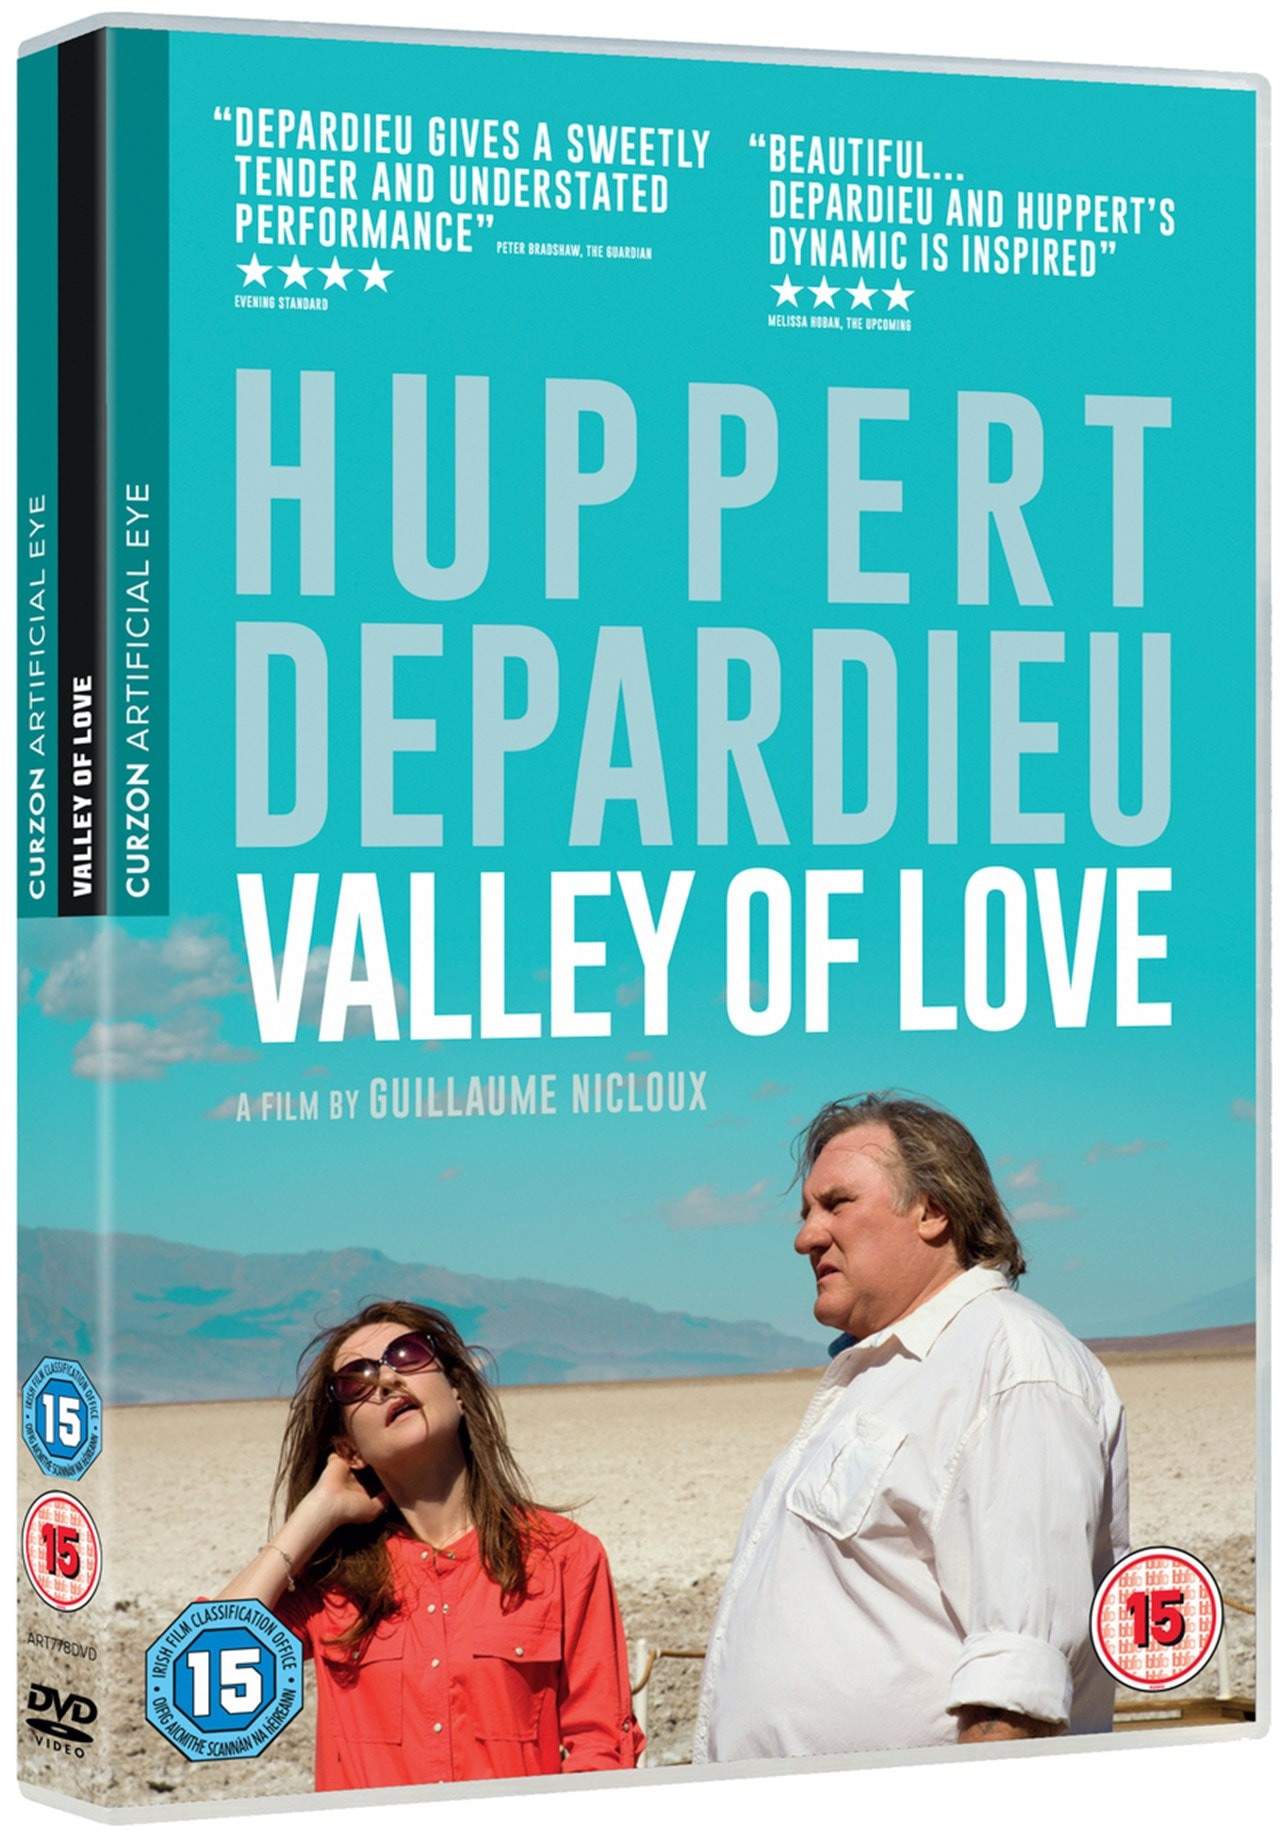 Valley of Love - 4